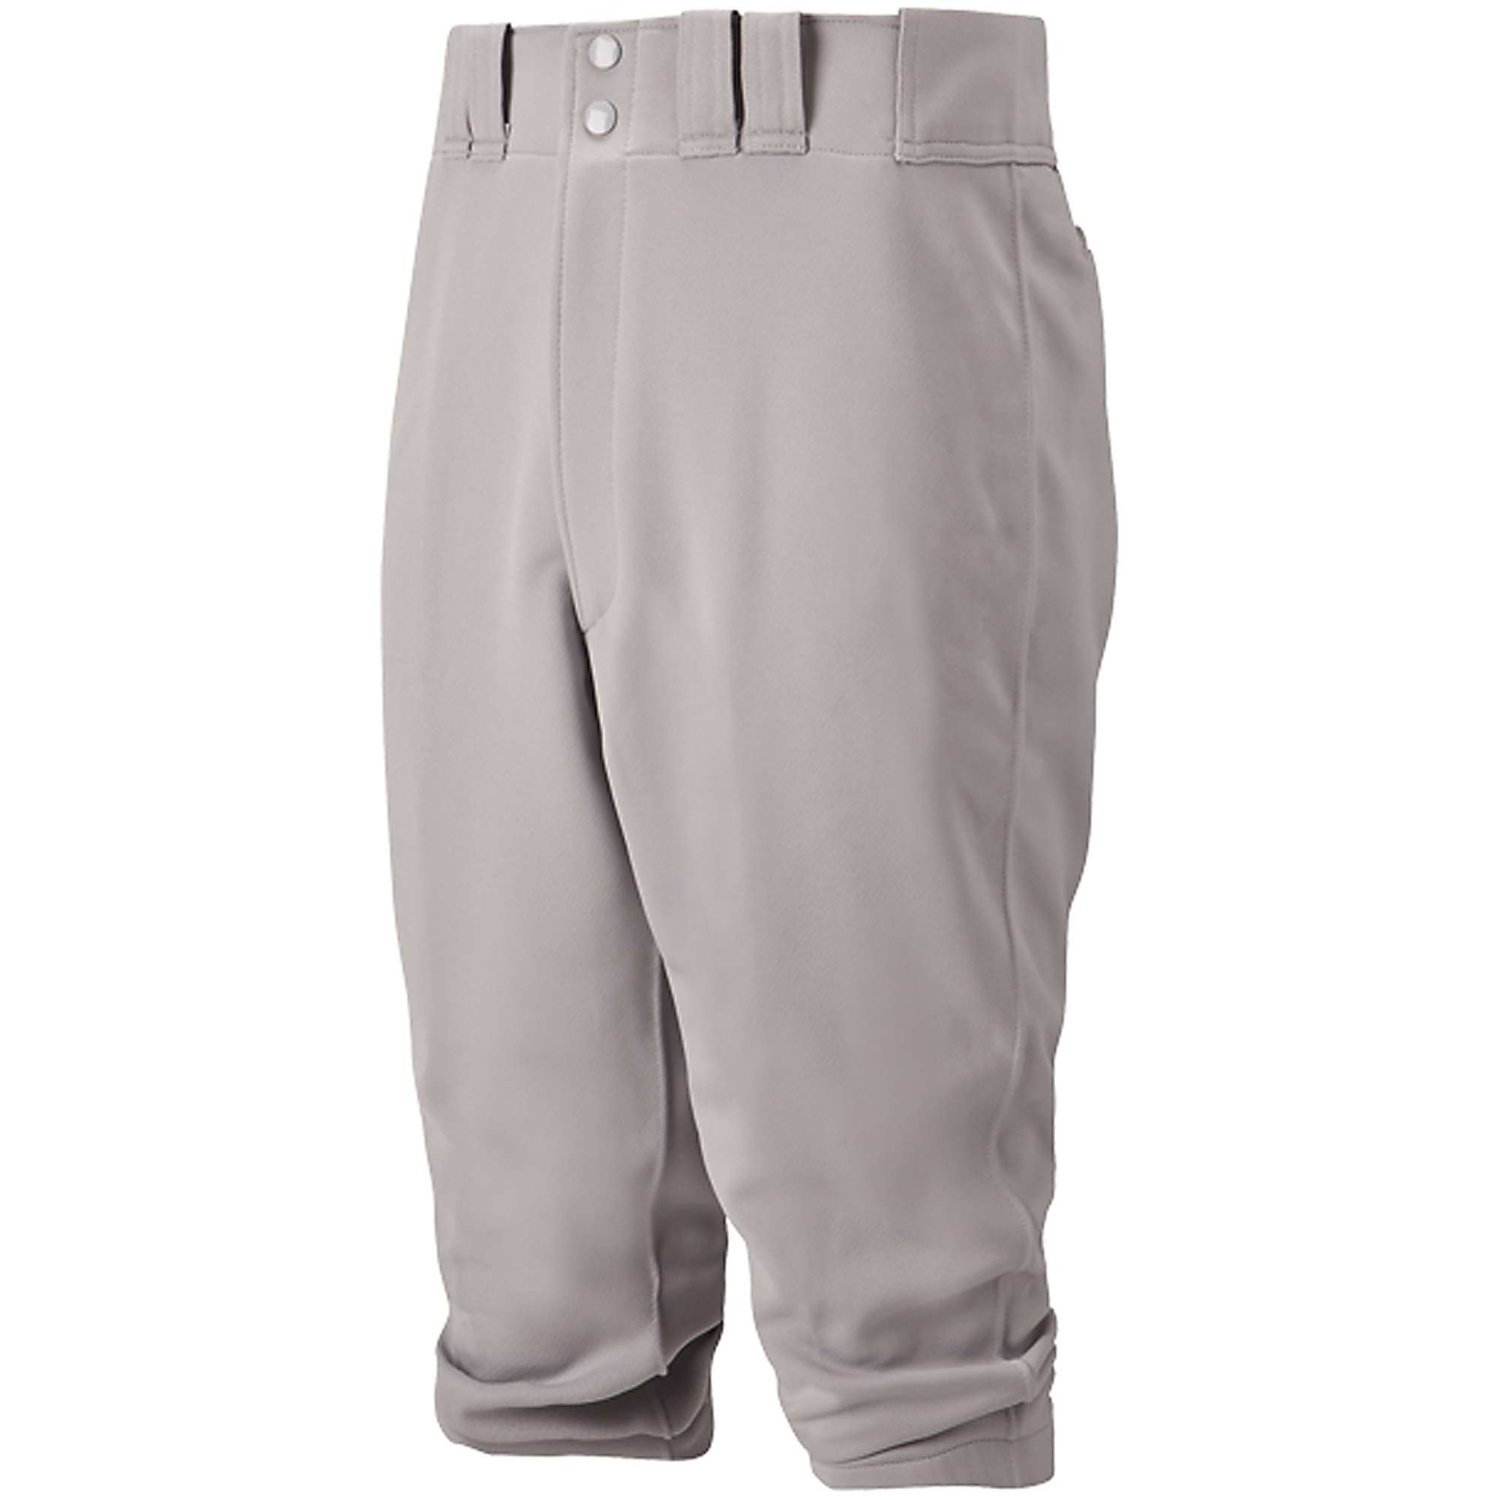 Mizuno Youth Premier Short Baseball Pant, Grey, Youth X-Large by Mizuno